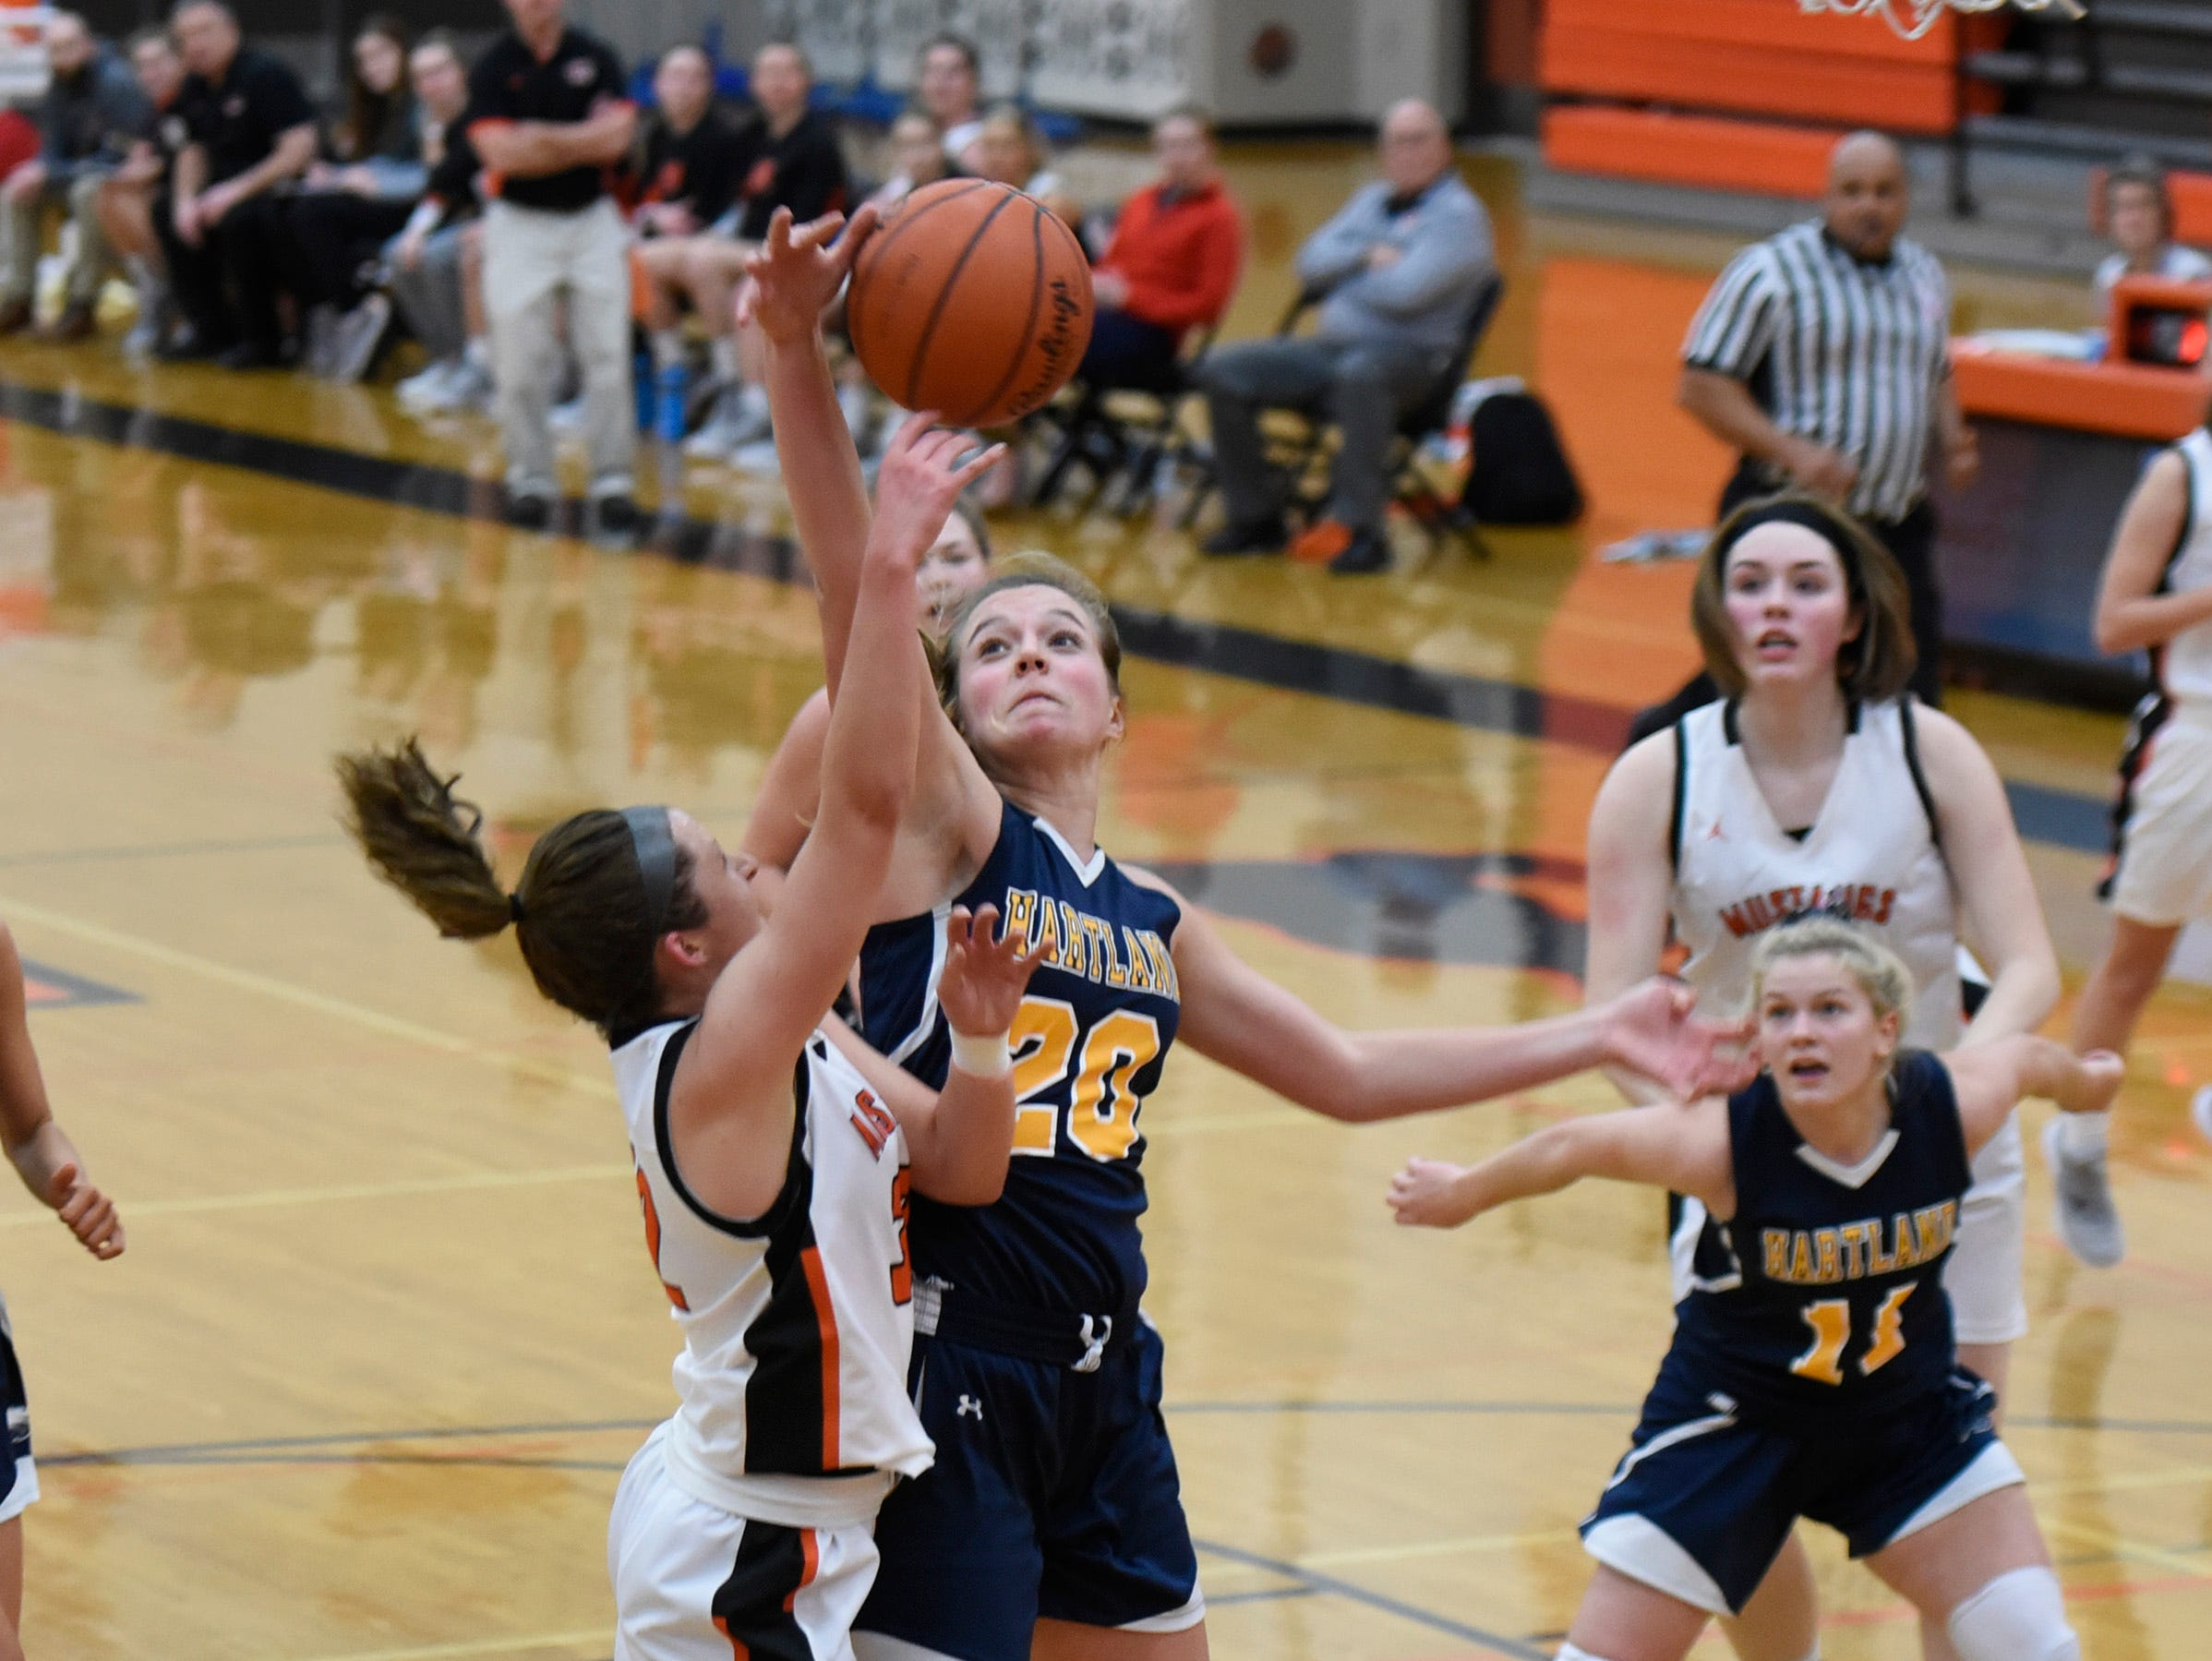 Hartland's Lillee Gustafson (20) blocks a lay up by Northville's Ellie Thallman (32) during a KLAA match up between the Mustangs and Eagles at Northville Jan. 8, 2019